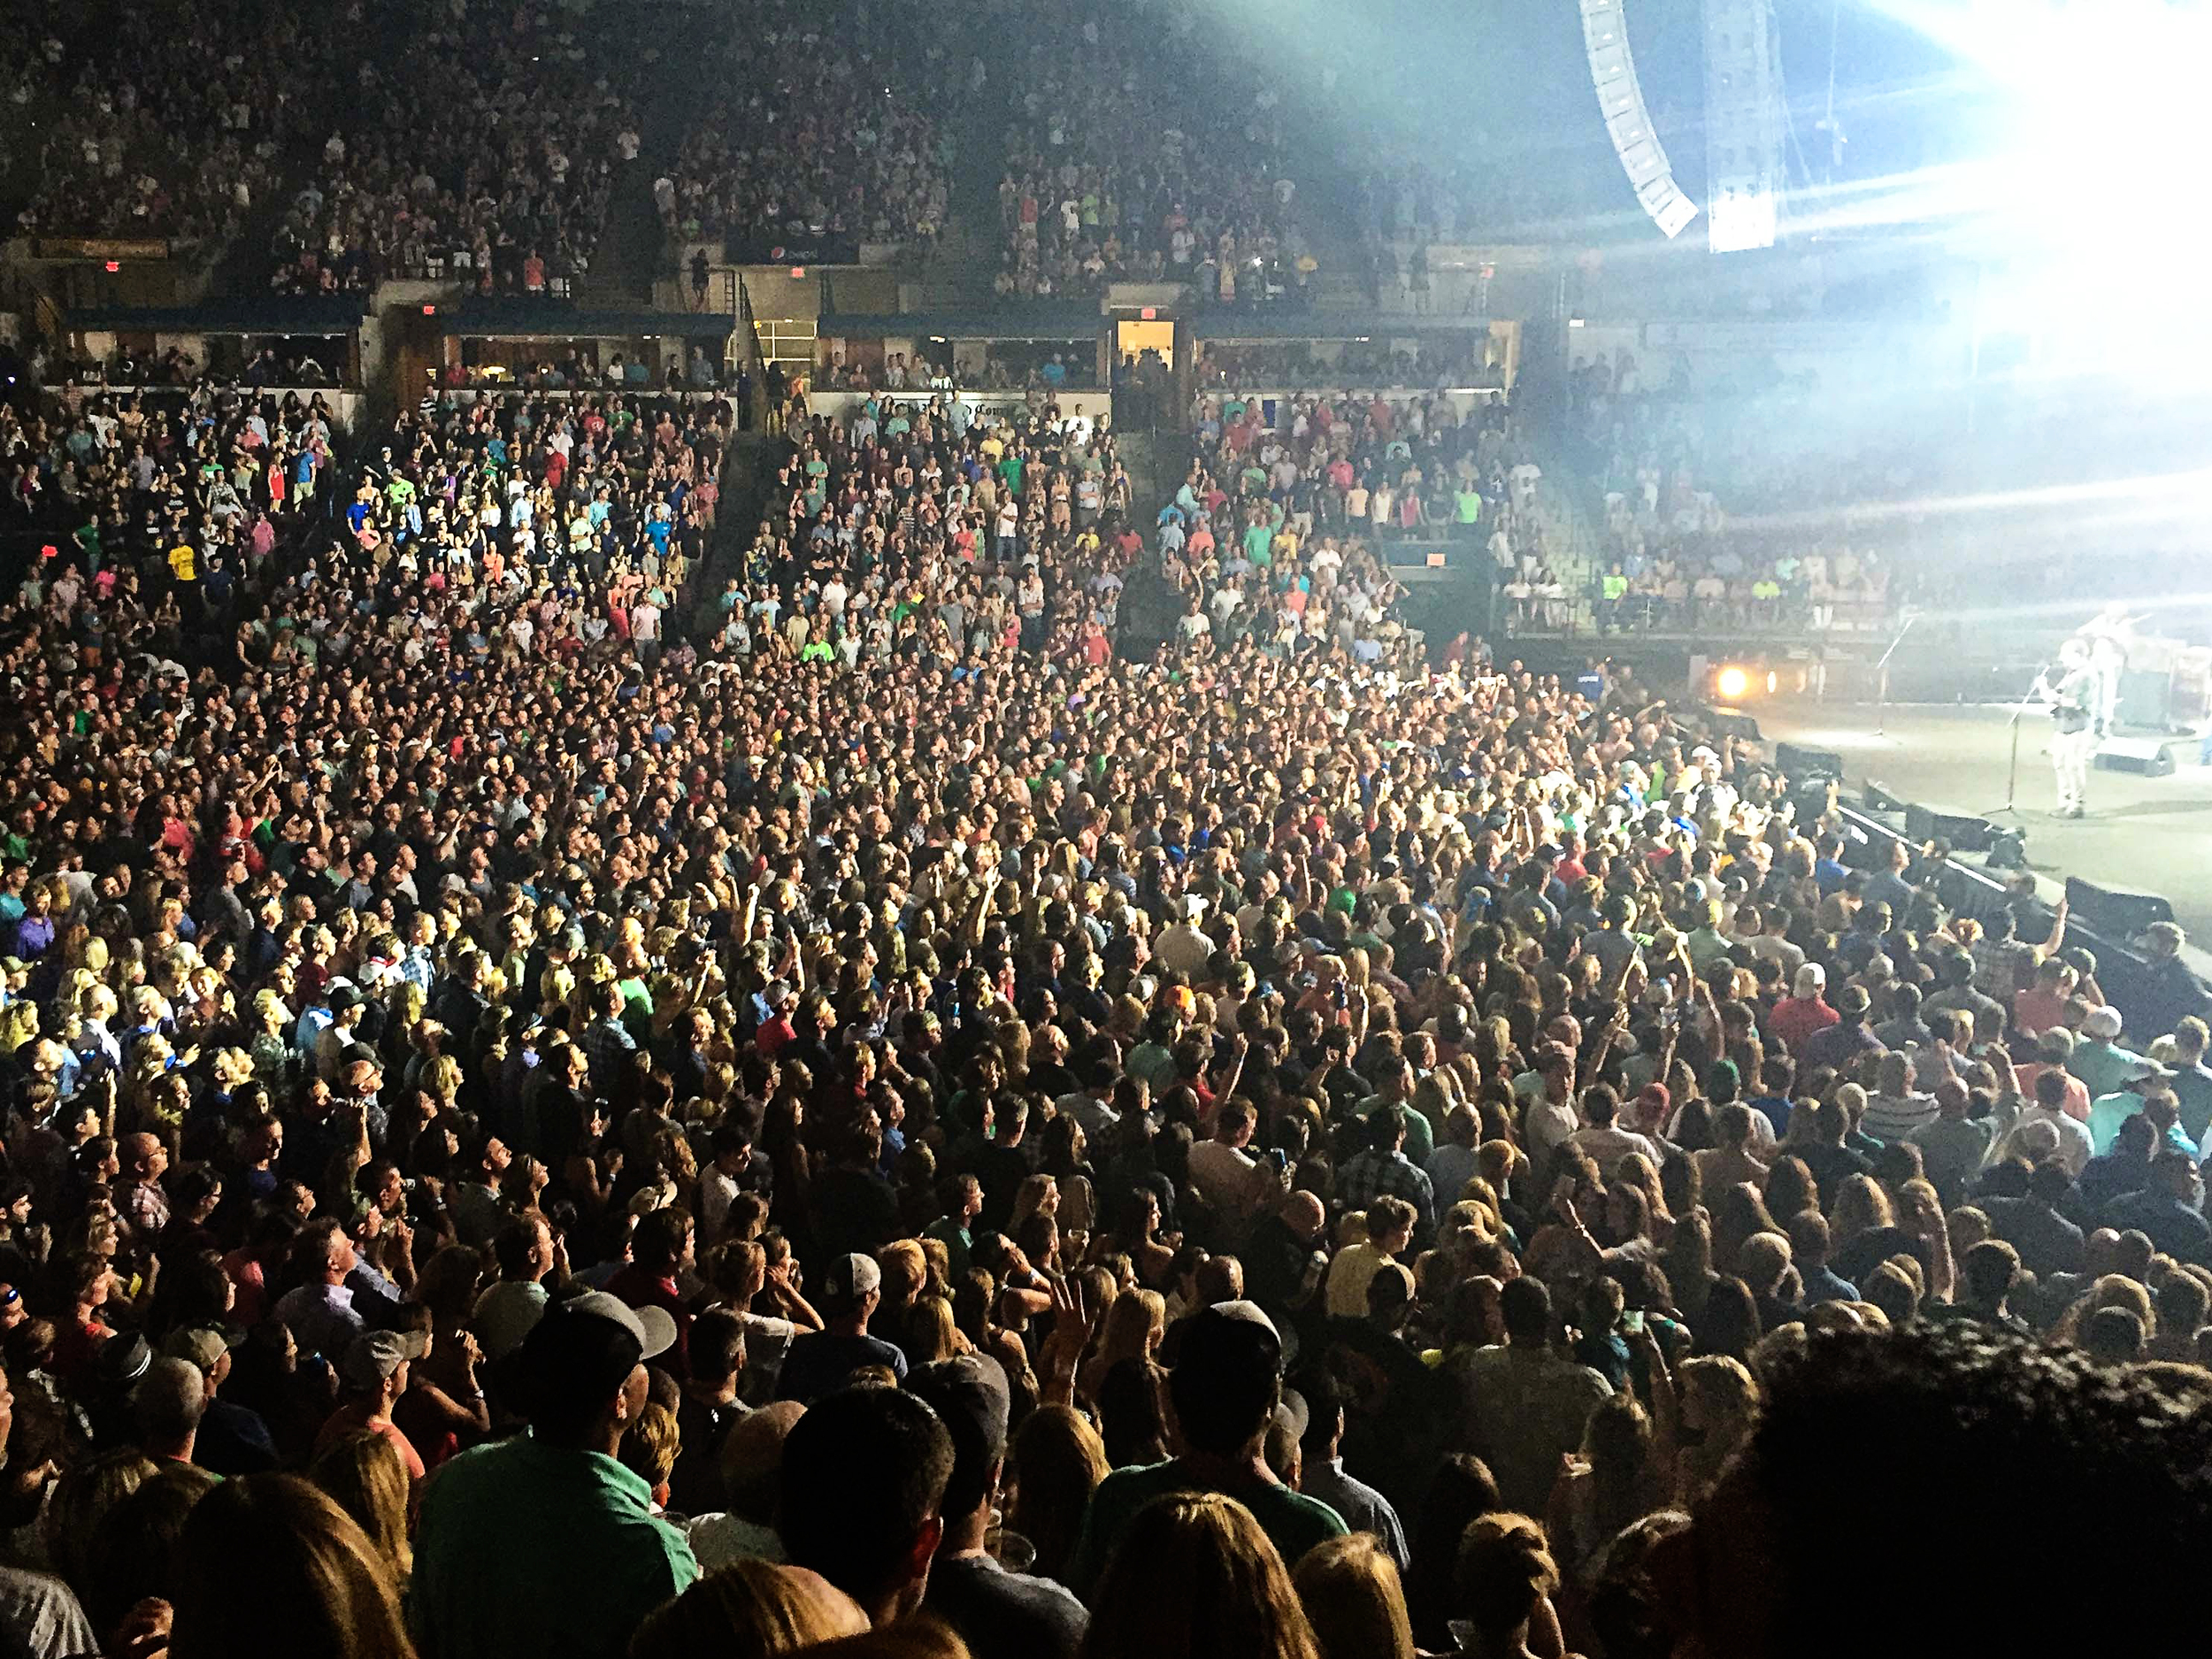 The Dave Matthews Band last week at the N. Charleston Coliseum. Taken with my trusty iPhone.